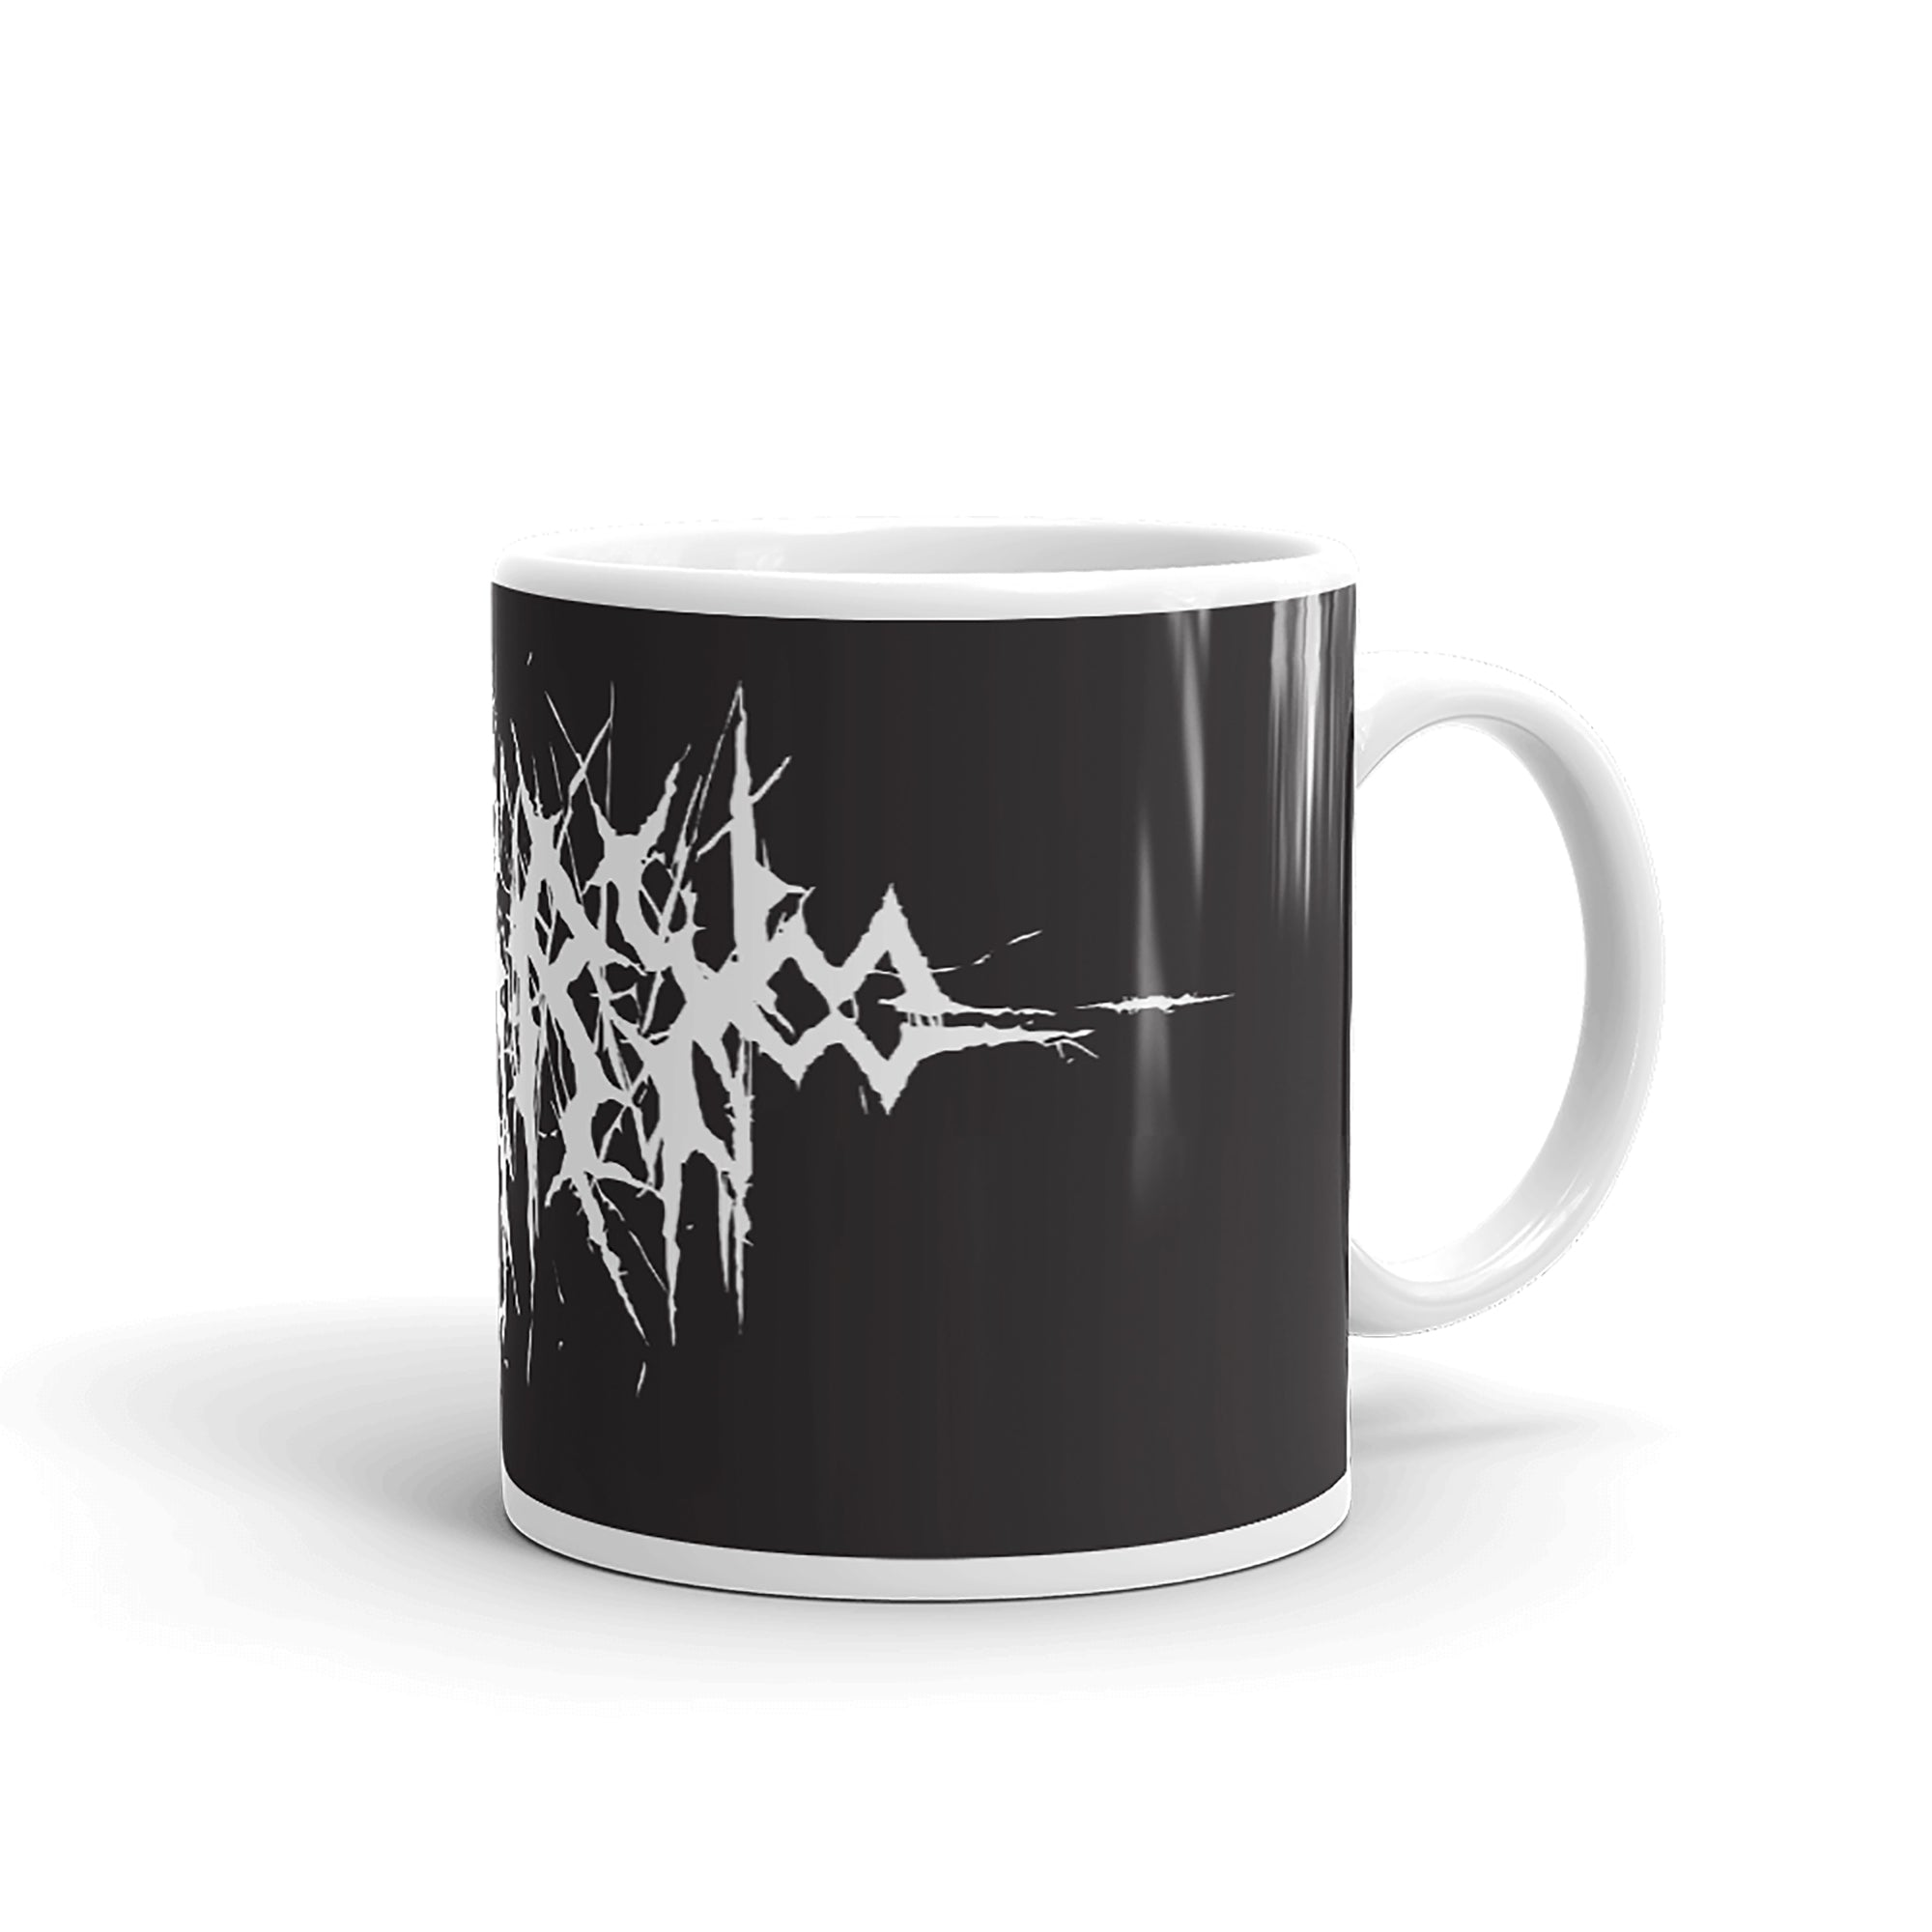 Custom Name Black Metal Coffee Mug in White Text